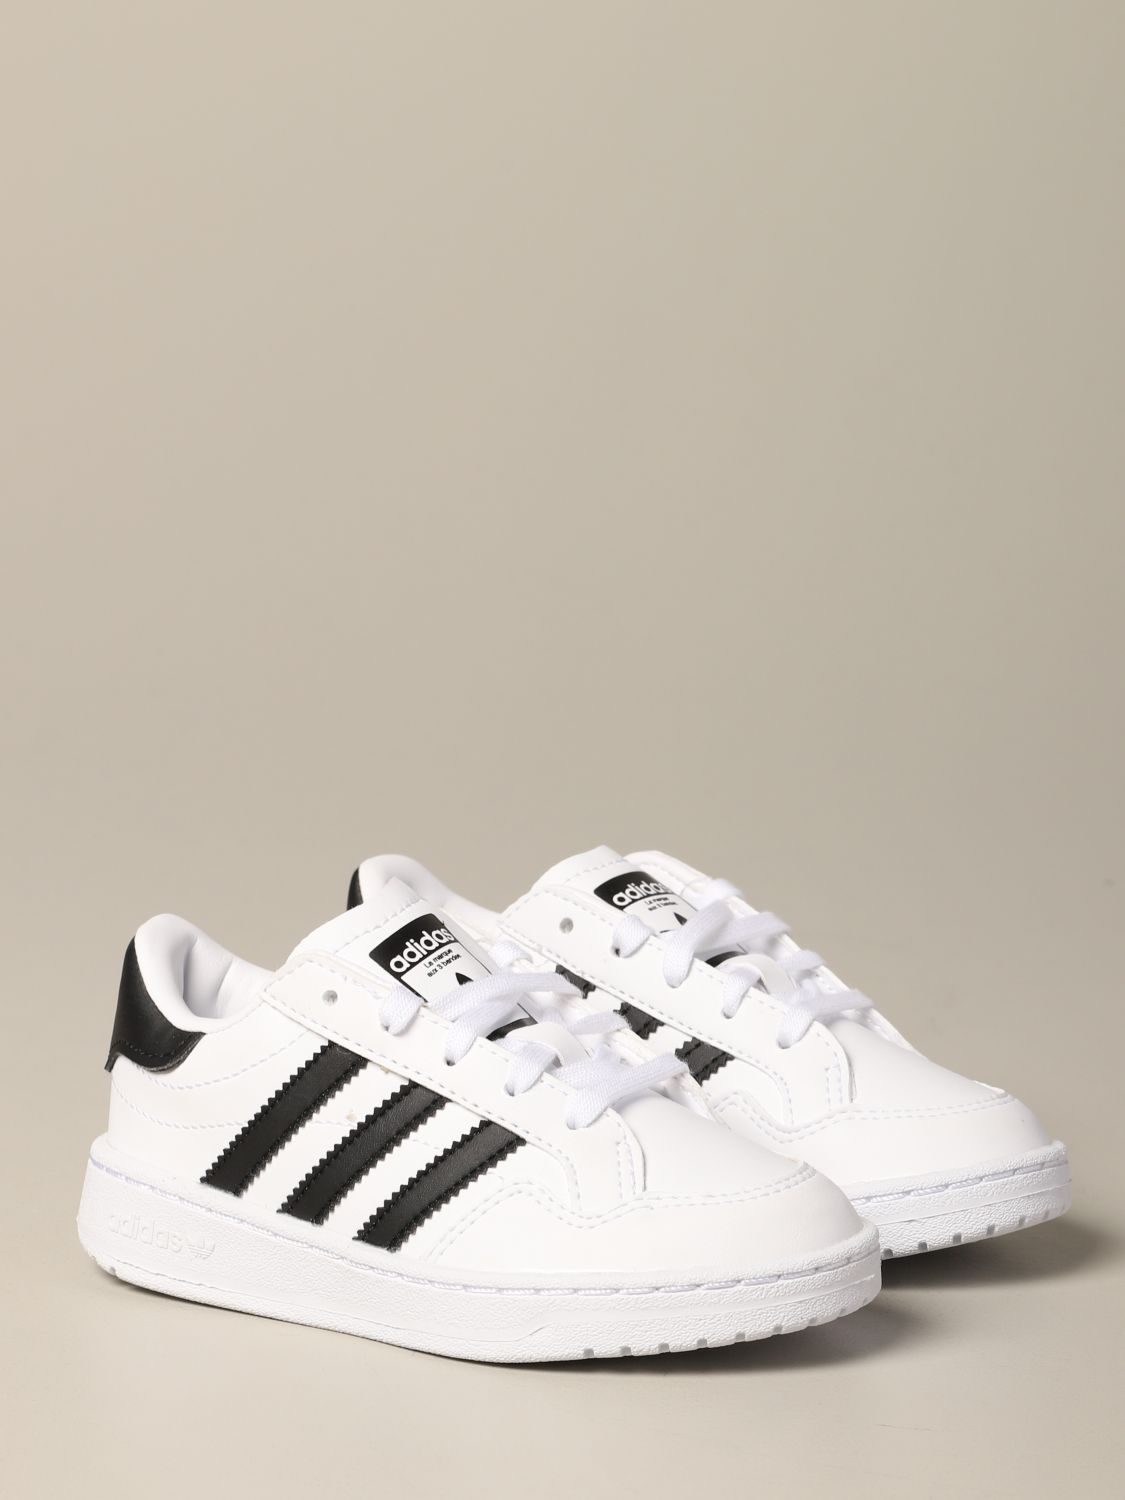 Shoes Adidas Originals: Shoes kids Adidas Originals white 2